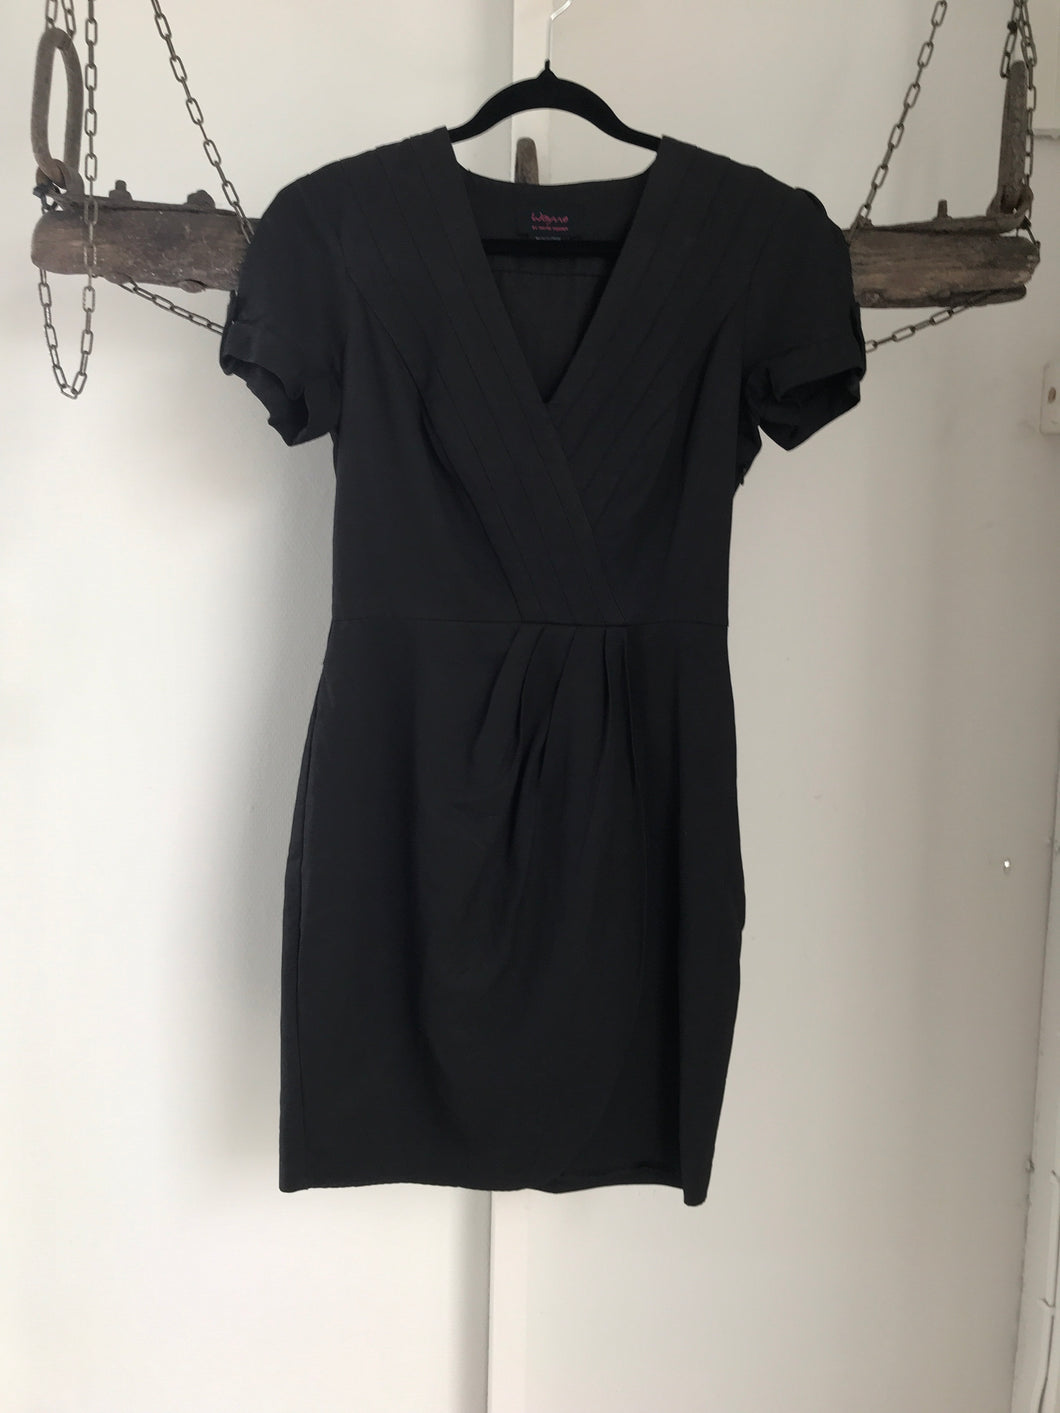 Wayne Cooper Black Short Sleeve Dress Size 8